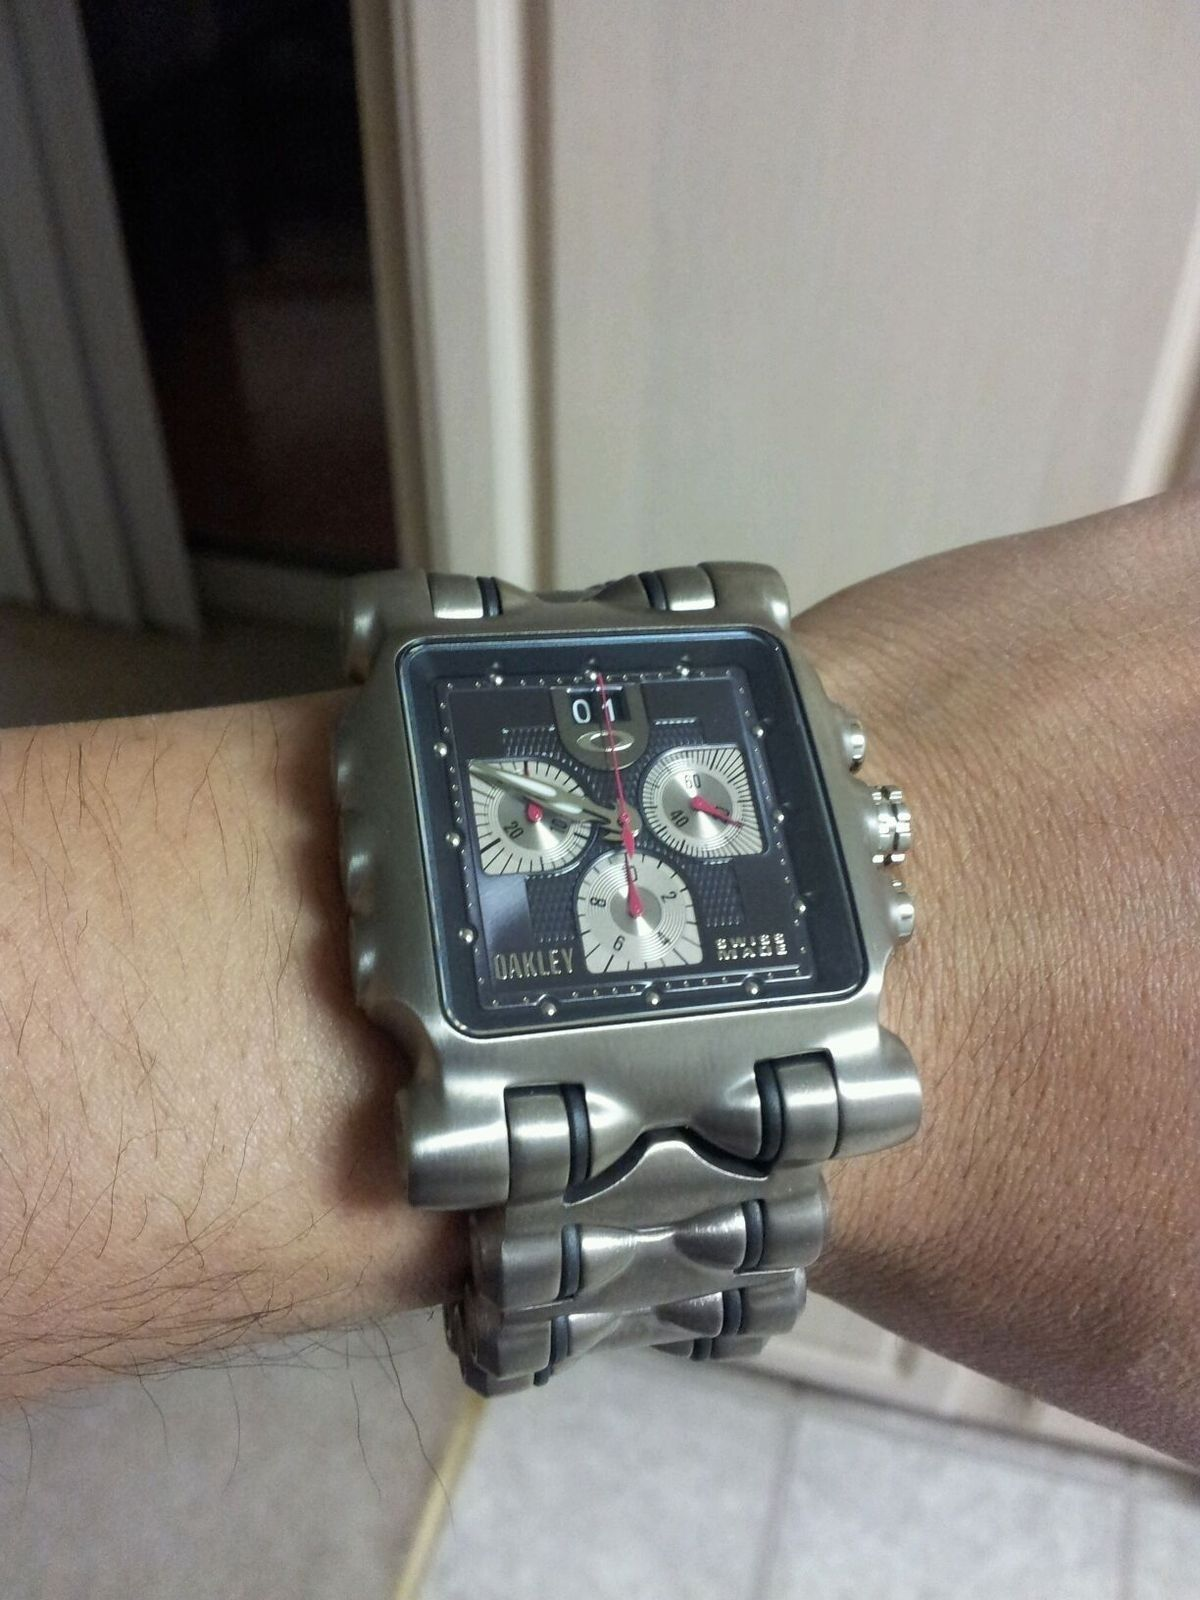 Picked Up A New Timepiece...time Tank! - IIqx8.jpg